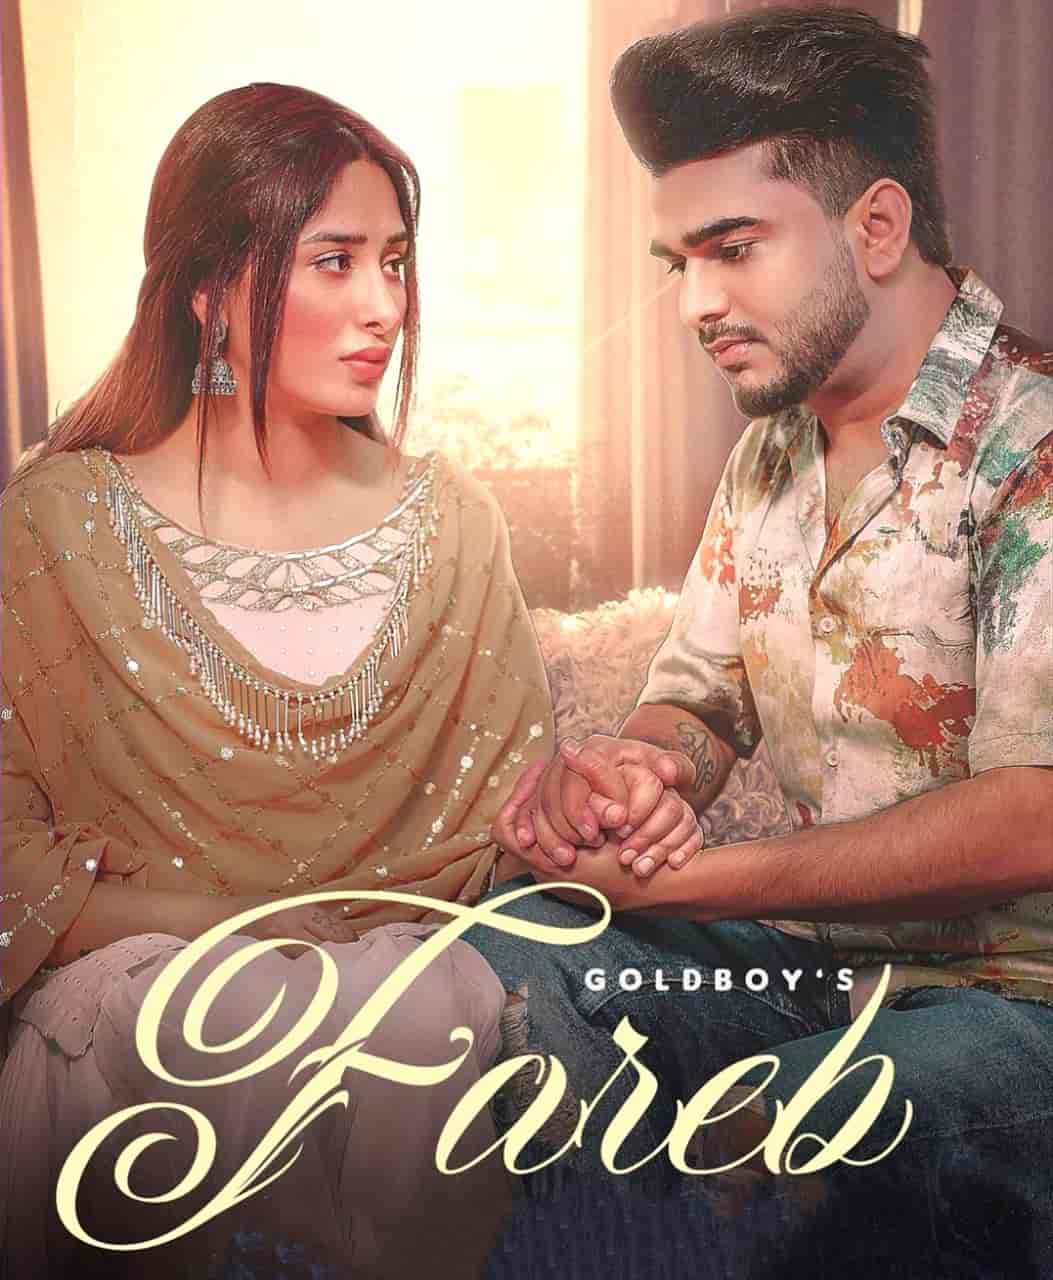 Fareb Sad Punjabi Song Image Features Goldboy and Mahira Sharma